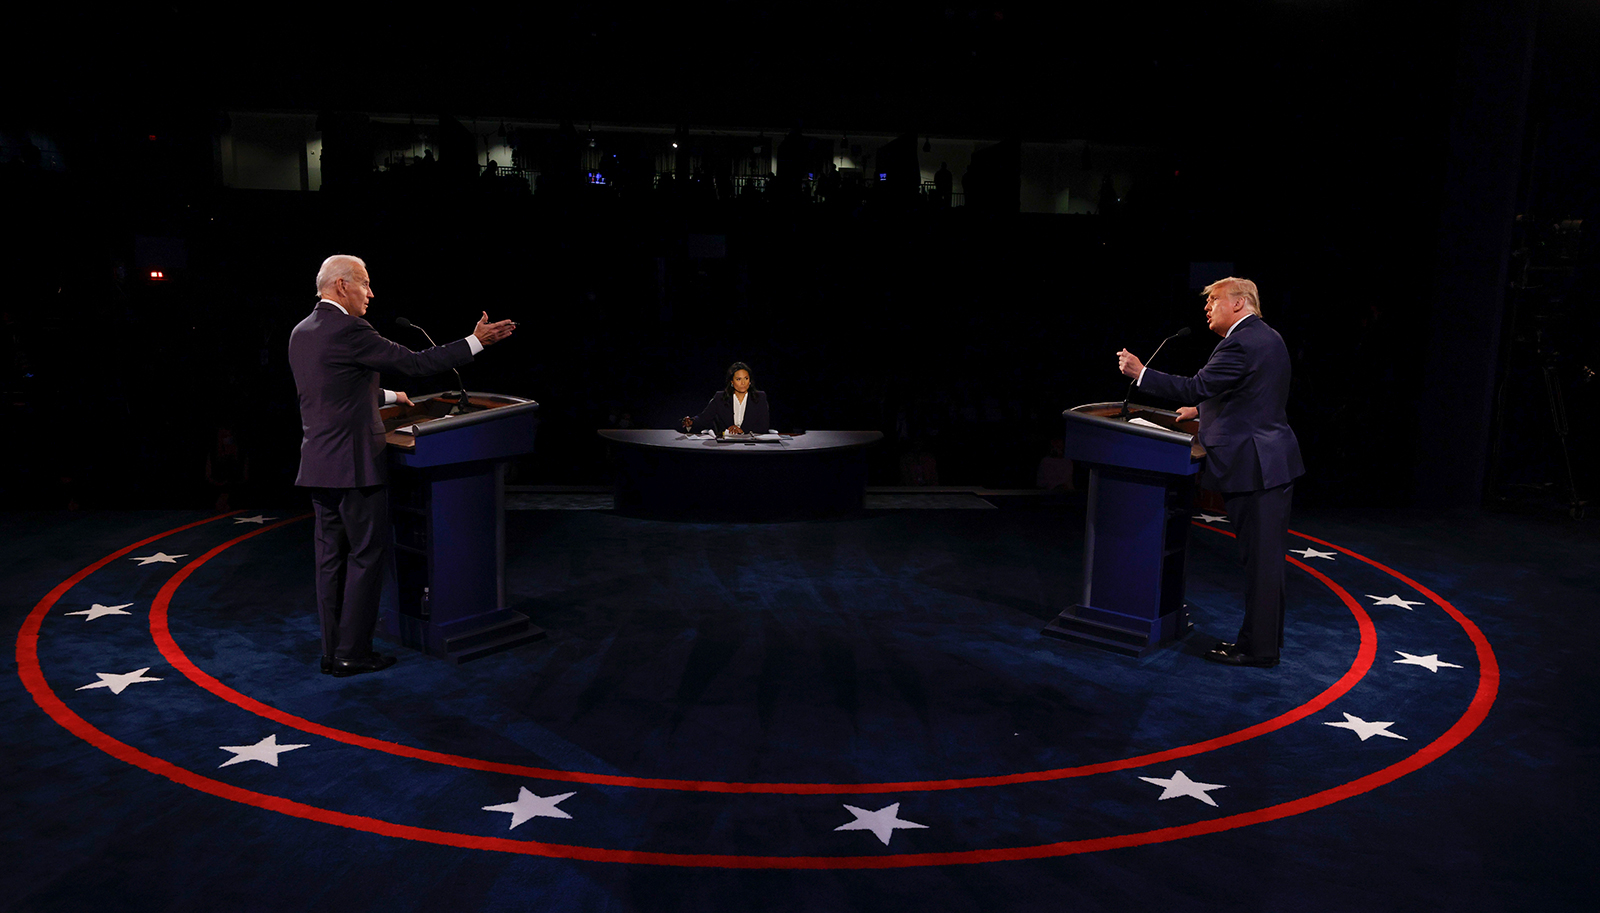 The general election debates are over. Here's what we learned